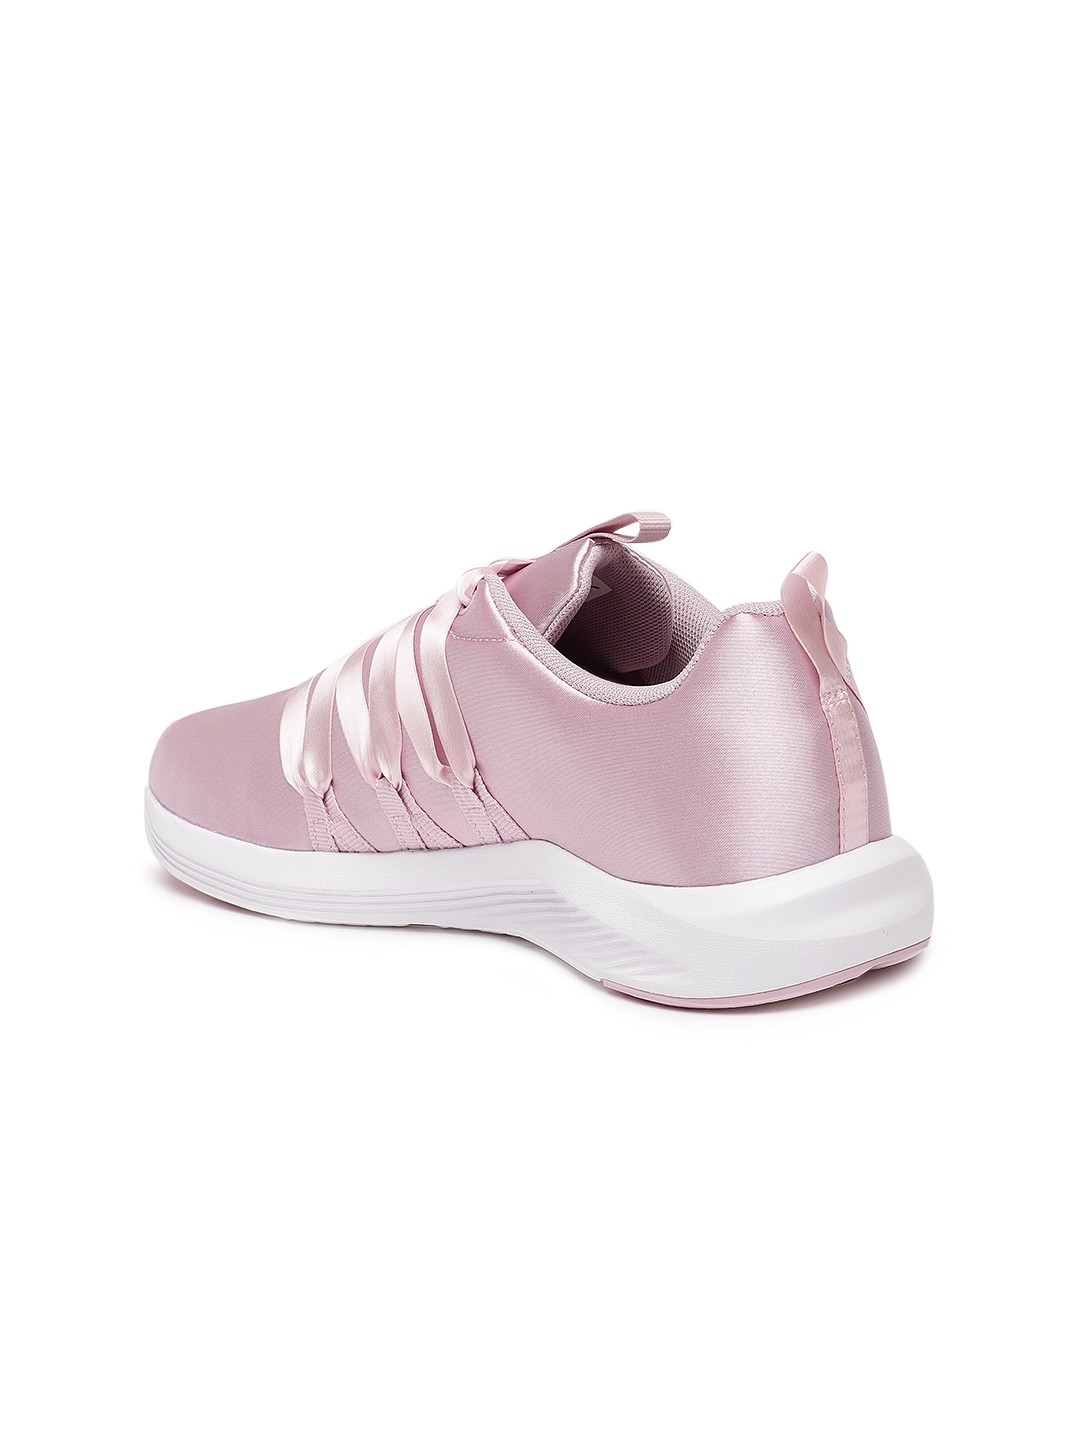 b2c34f860886 Buy Puma Women Pink Prowl Alt Satin Wn s Training Shoes - Sports ...